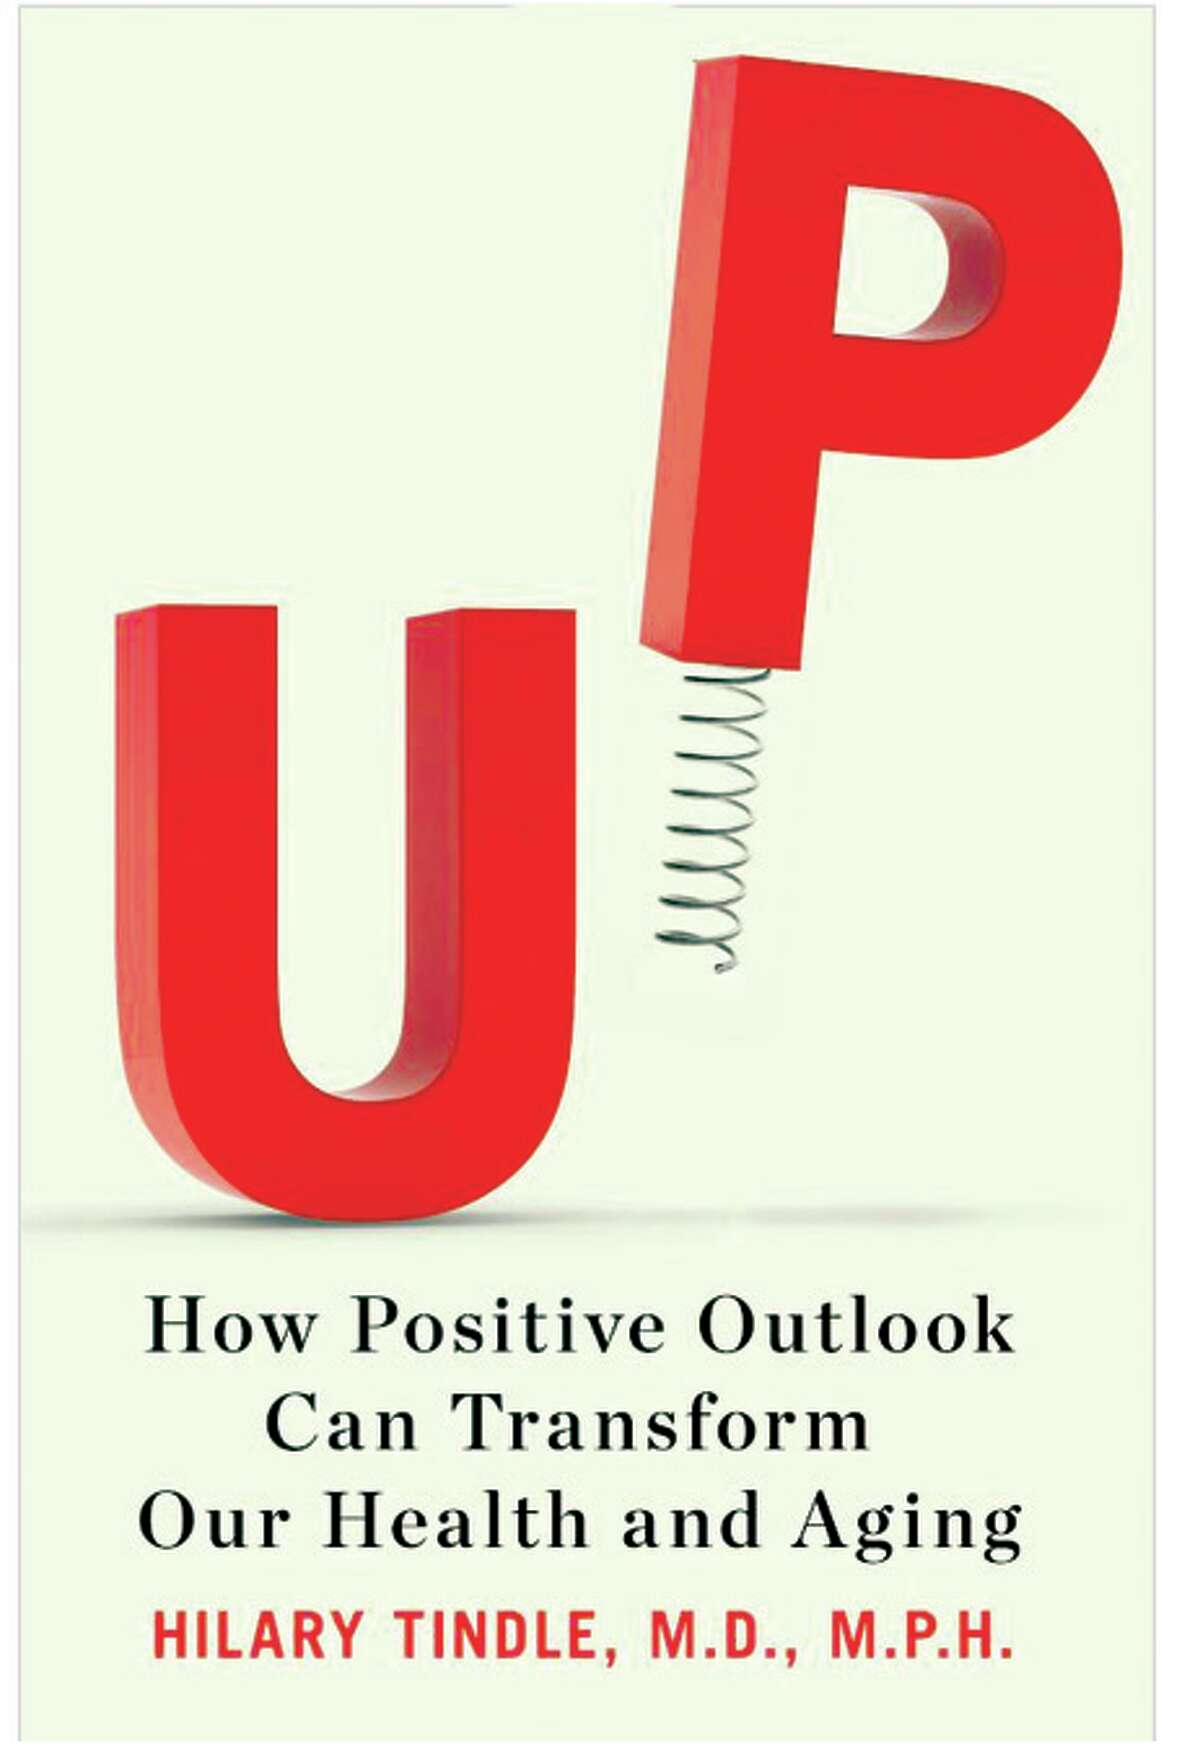 ?UP: How Positive Outlook Can Transform Our Health and Aging.? by Hilary Tindle, M.D., M.P.H